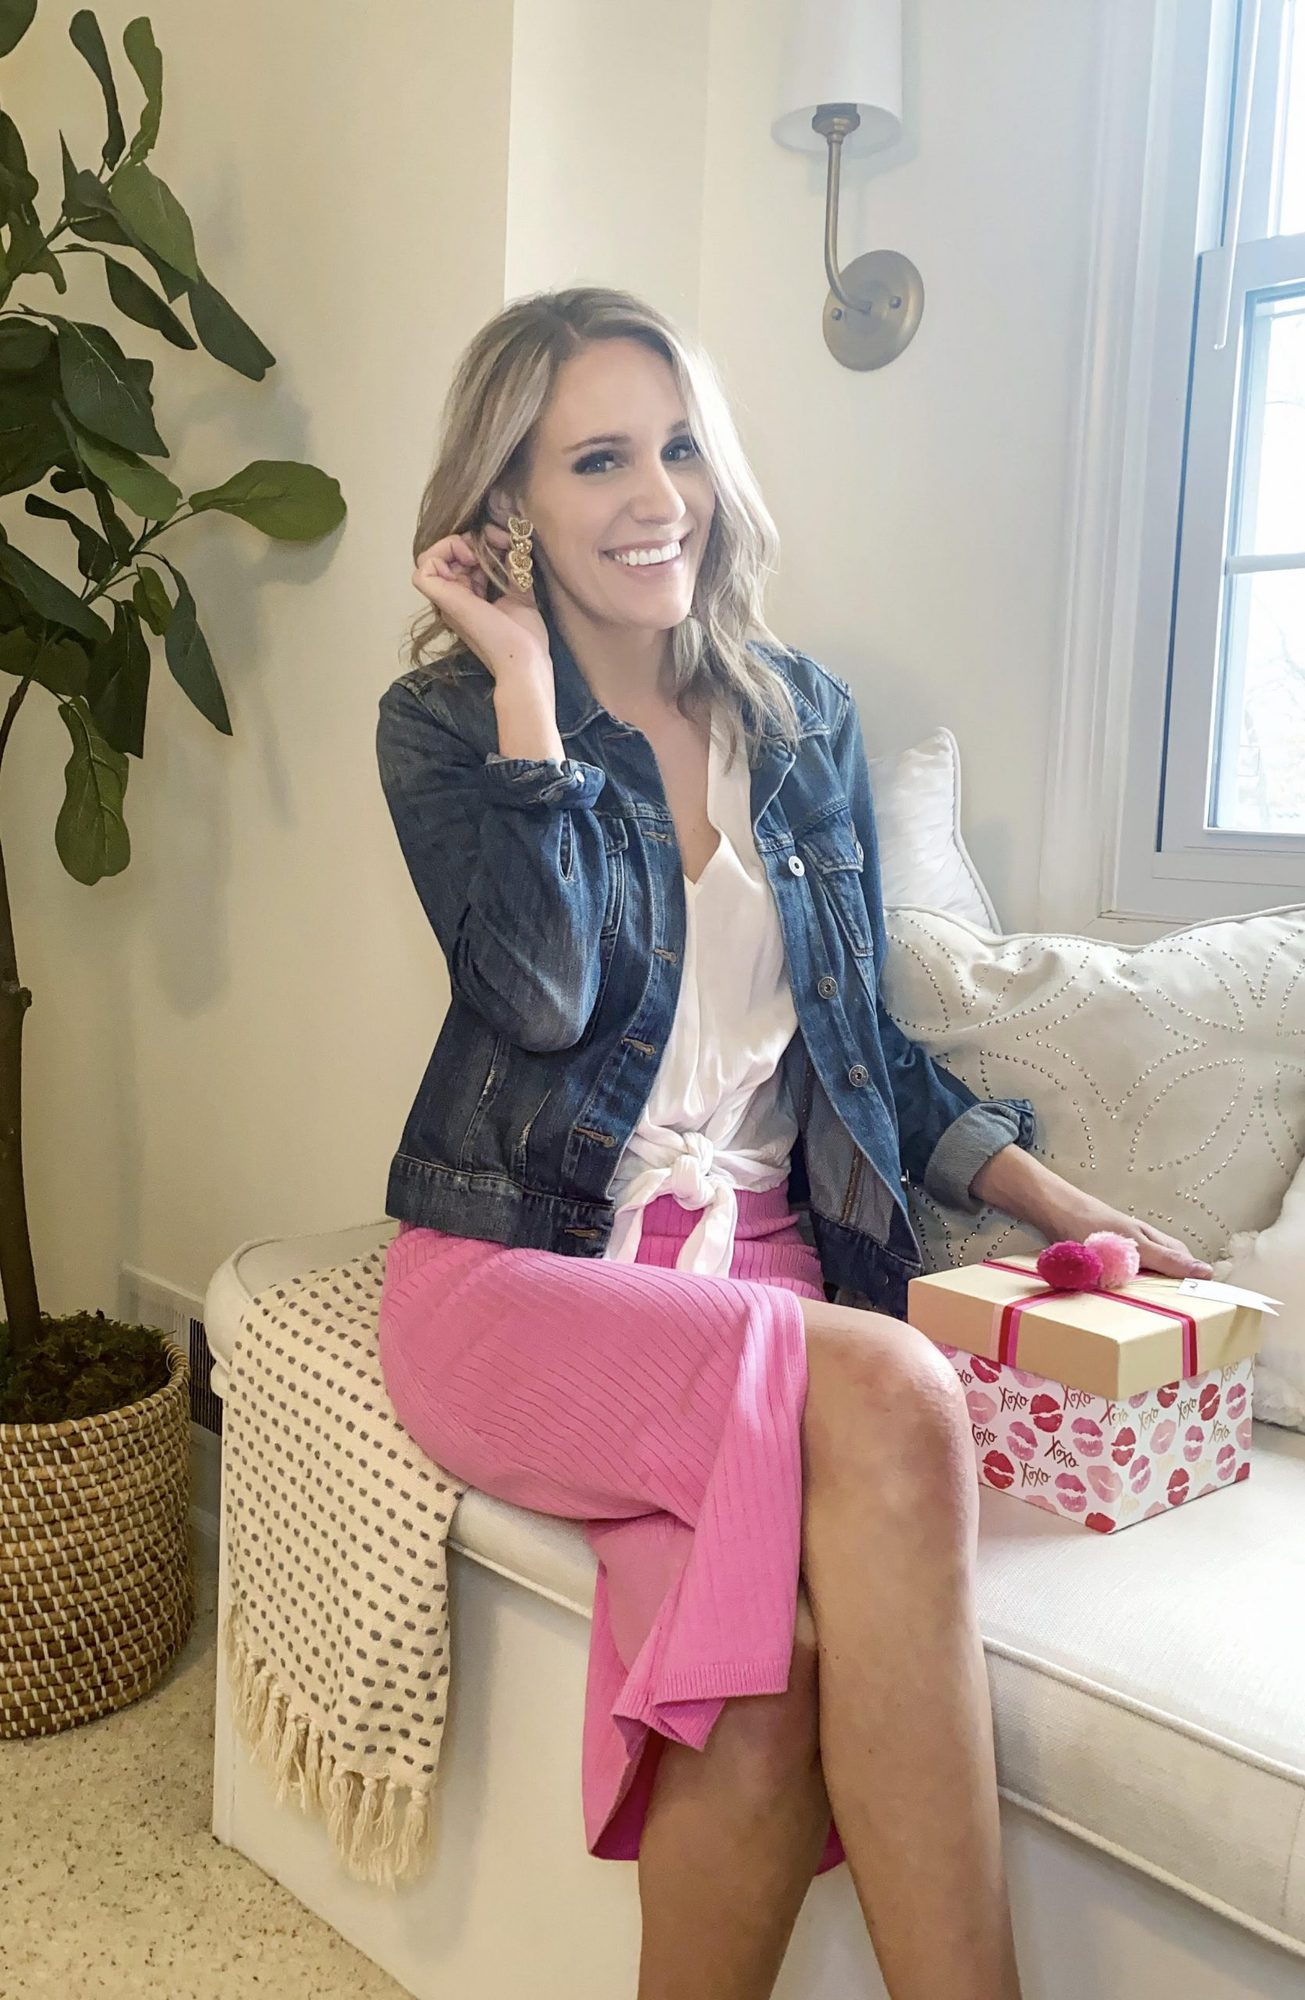 fashionable woman in valentine's outfit |Valentine's Day Gifts by popular Michigan life and style blog, The House of Navy: image of a woman sitting on a white window bench cushion and wearing a white tie waist shirt, denim jacket, pink skirt, and Lily Lough heart drop earrings.